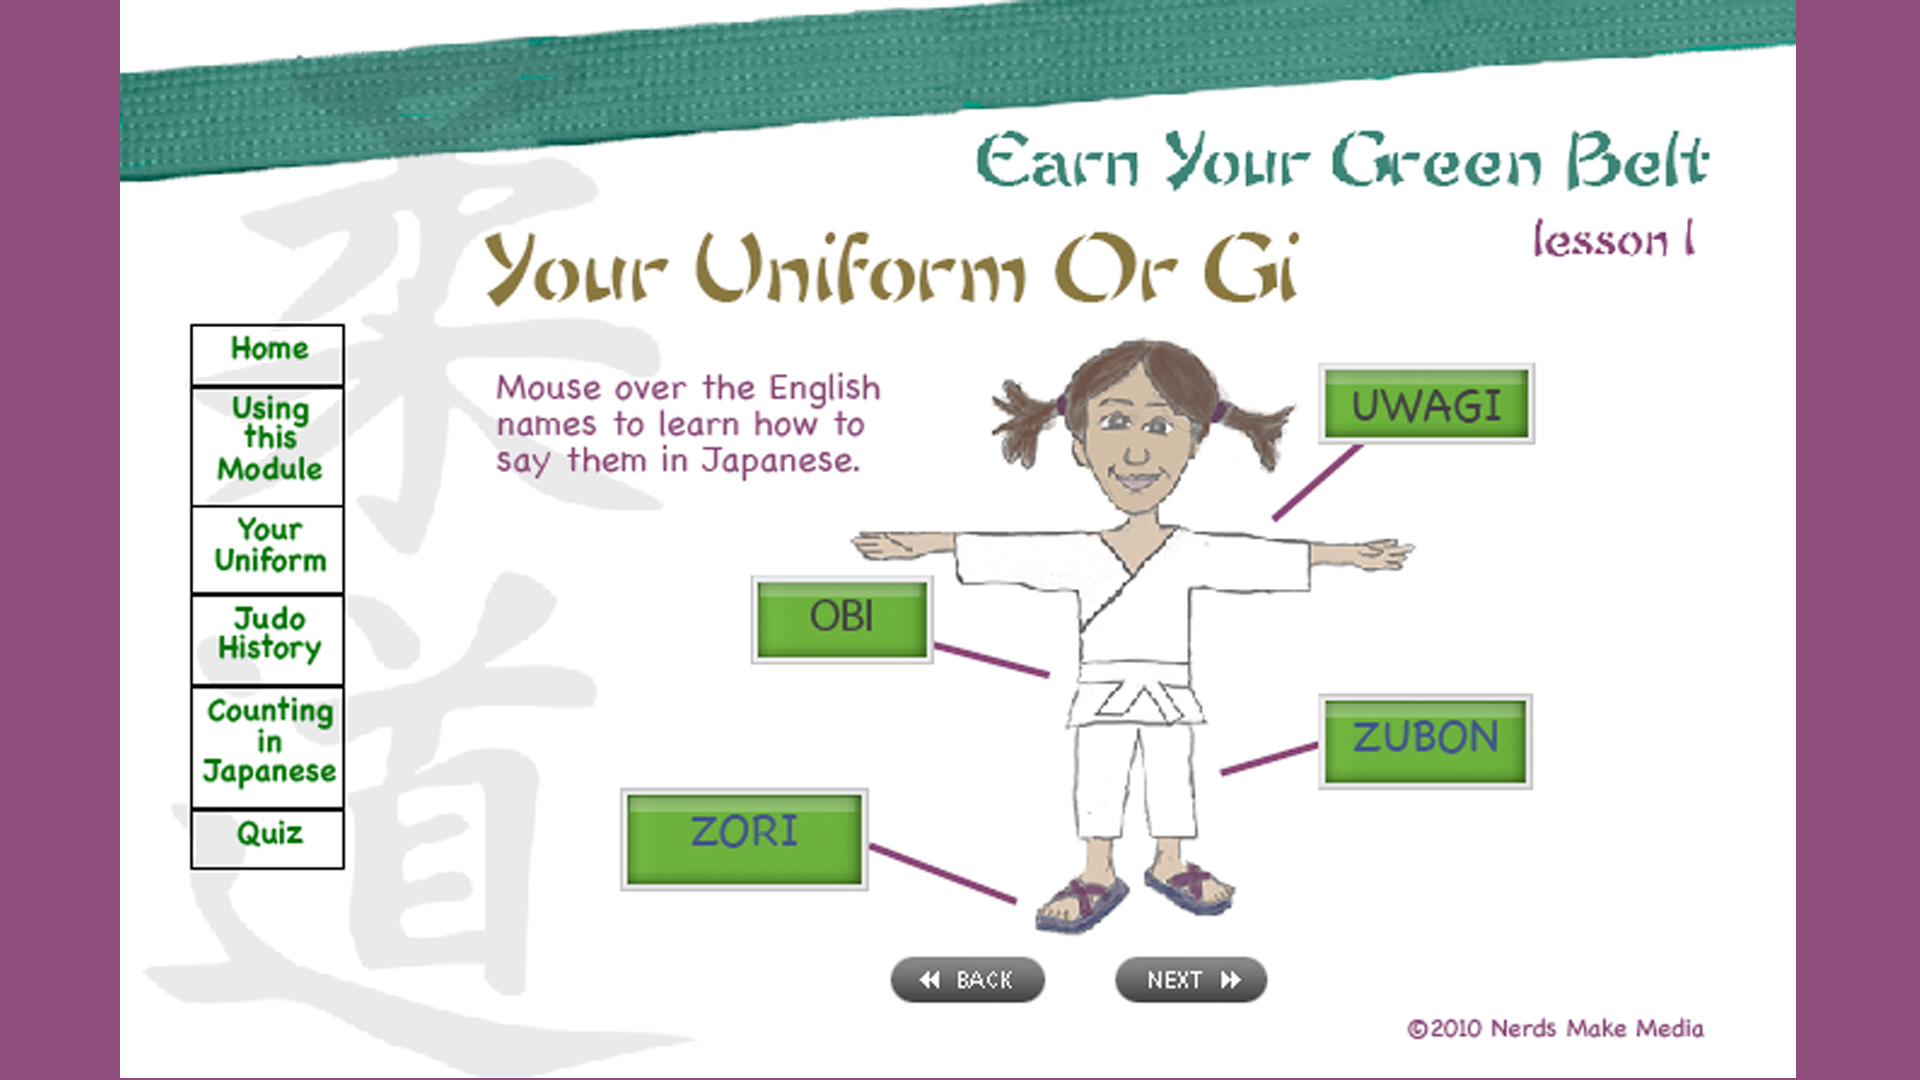 Earn Your Greenbelt - Lesson 1 sample of interactive page